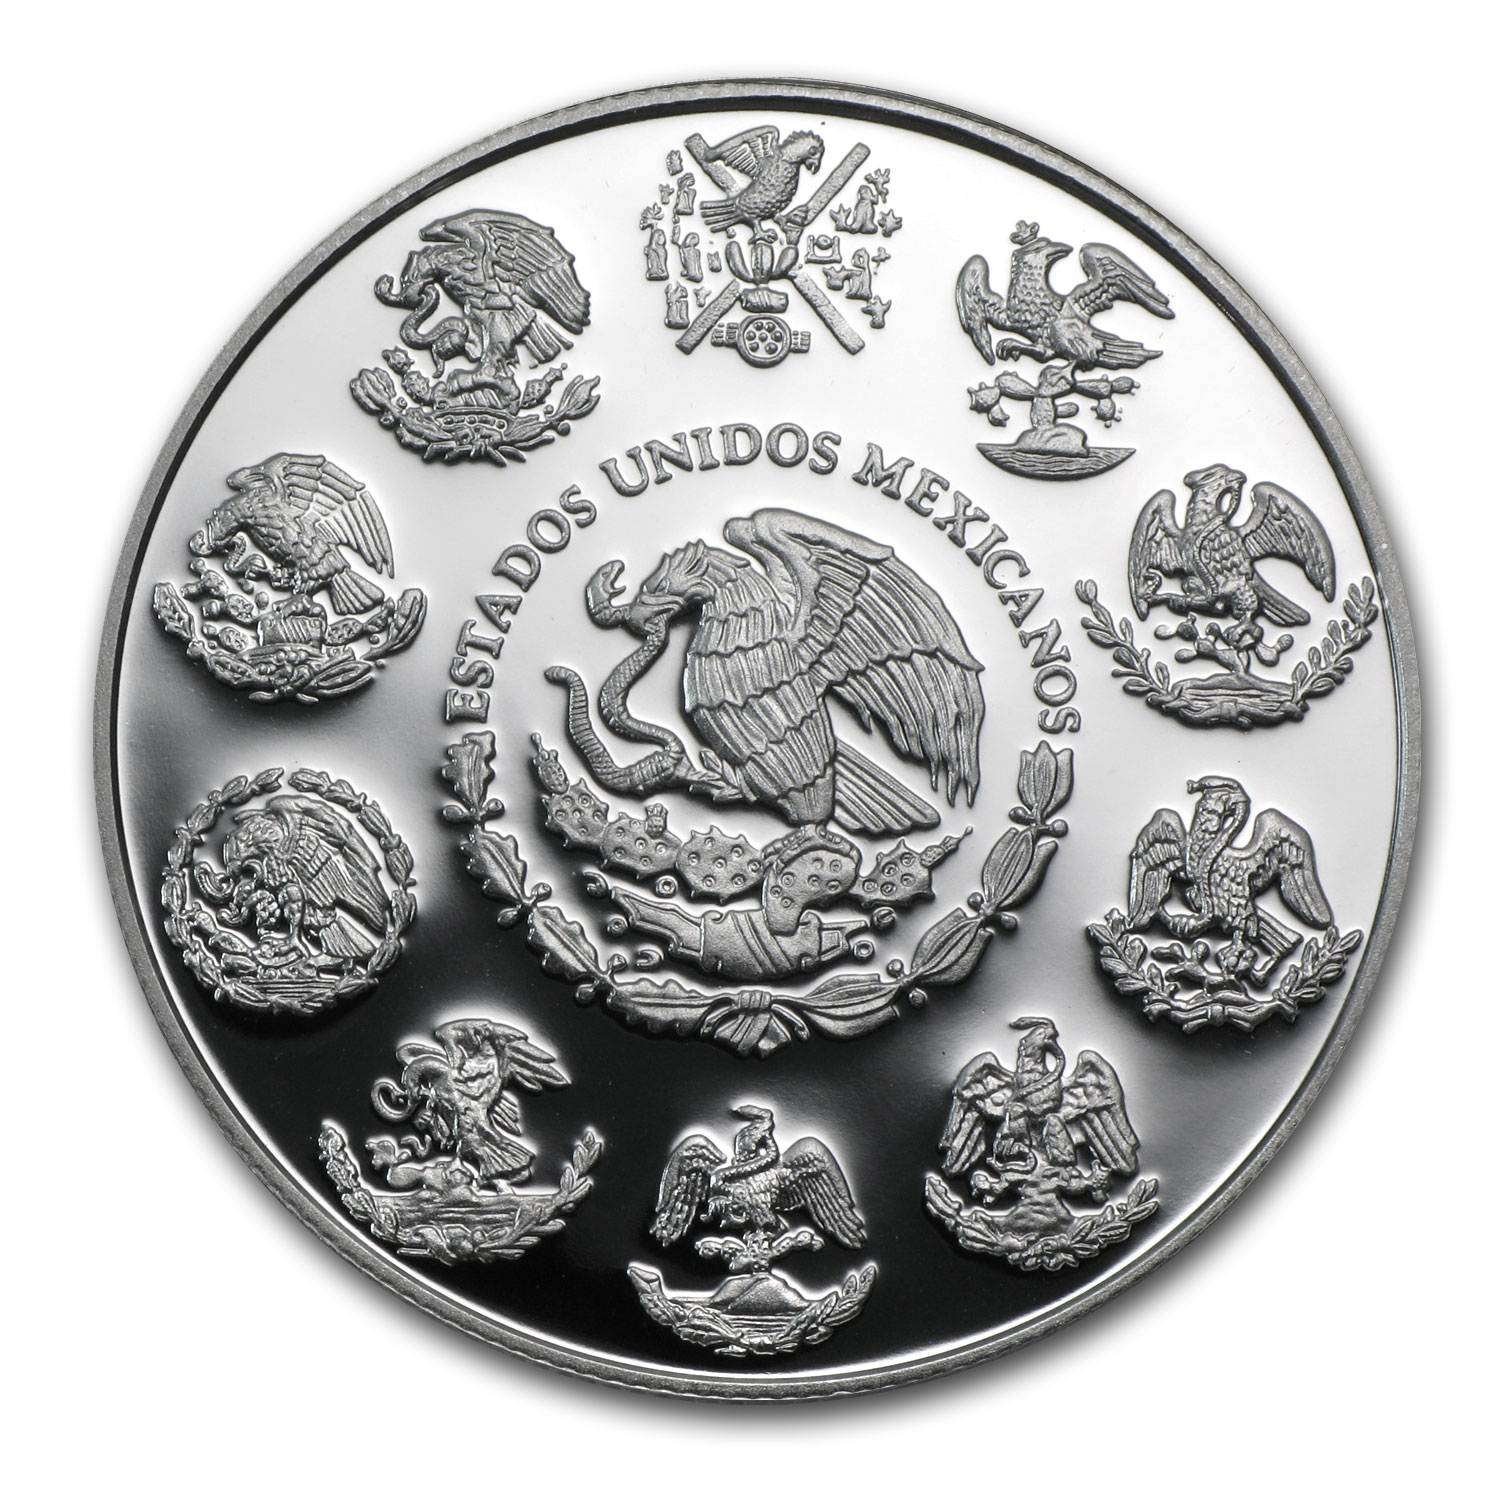 2014 1 oz Silver Mexican Libertad - Proof (In Capsule)